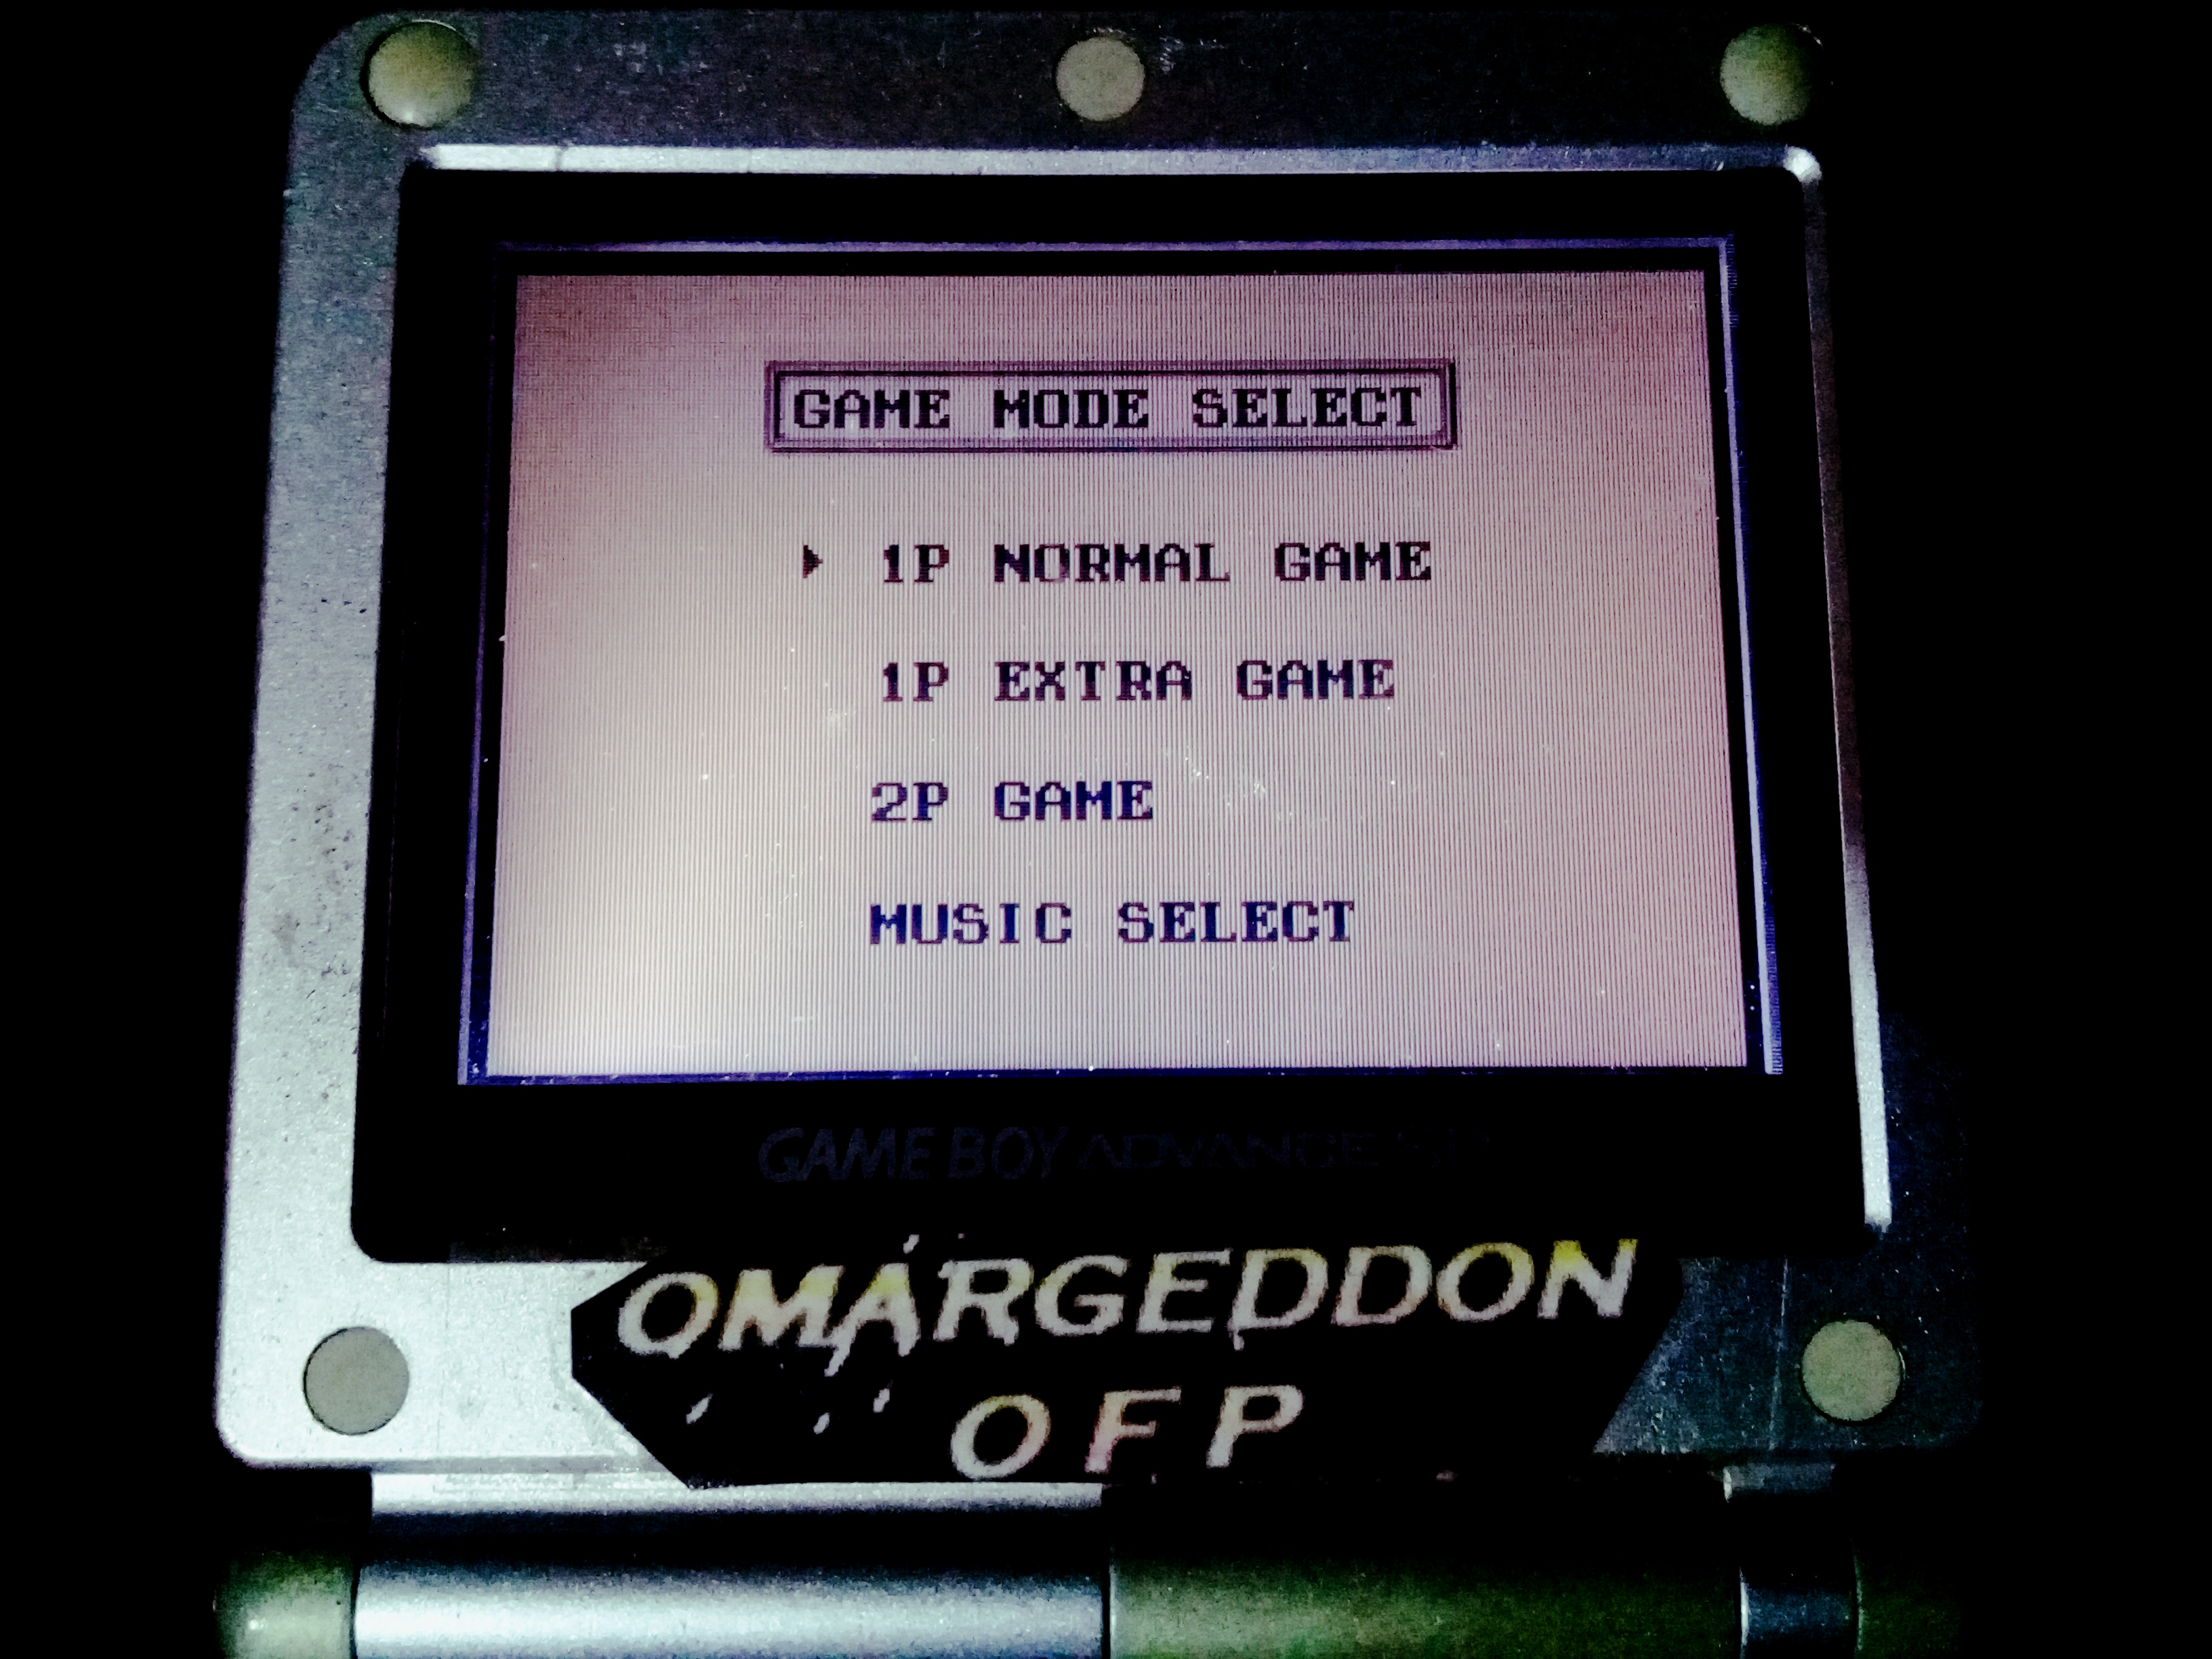 omargeddon: Pinball Party [Normal Game] (Game Boy) 79,100 points on 2020-09-14 02:38:24